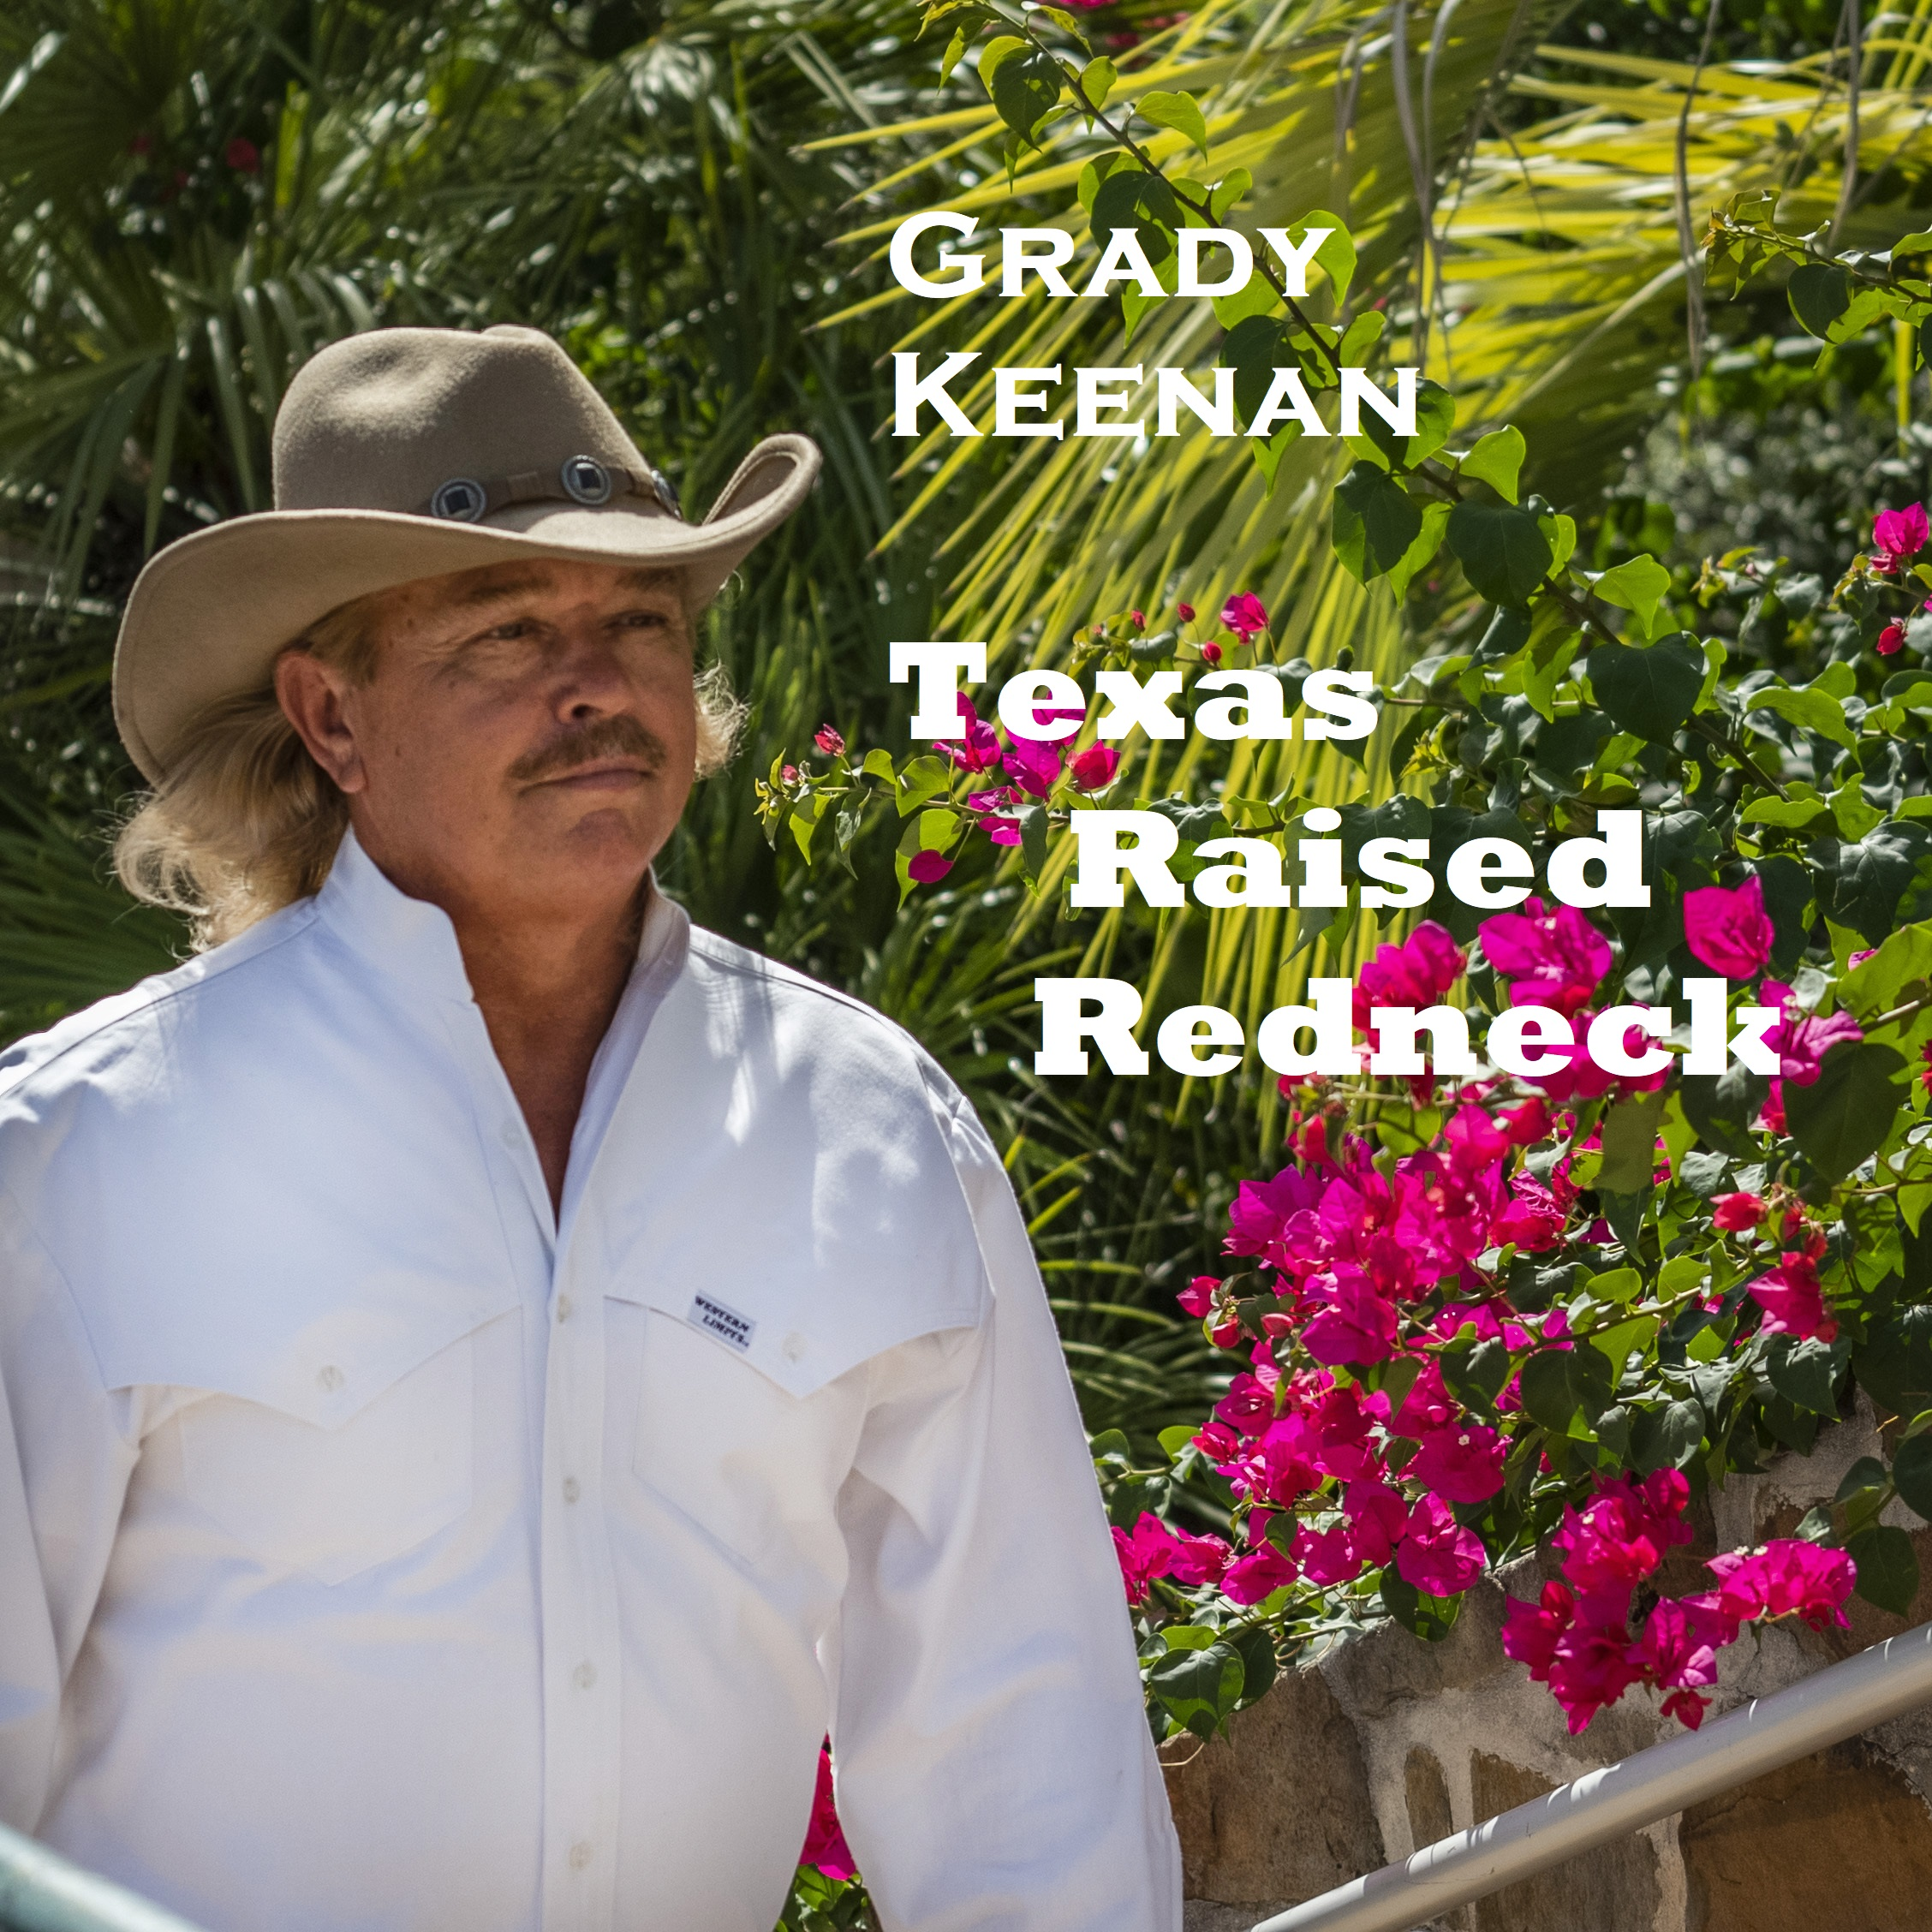 Grady Keenan Melds Country and Gospel Music to Produce Masterpieces